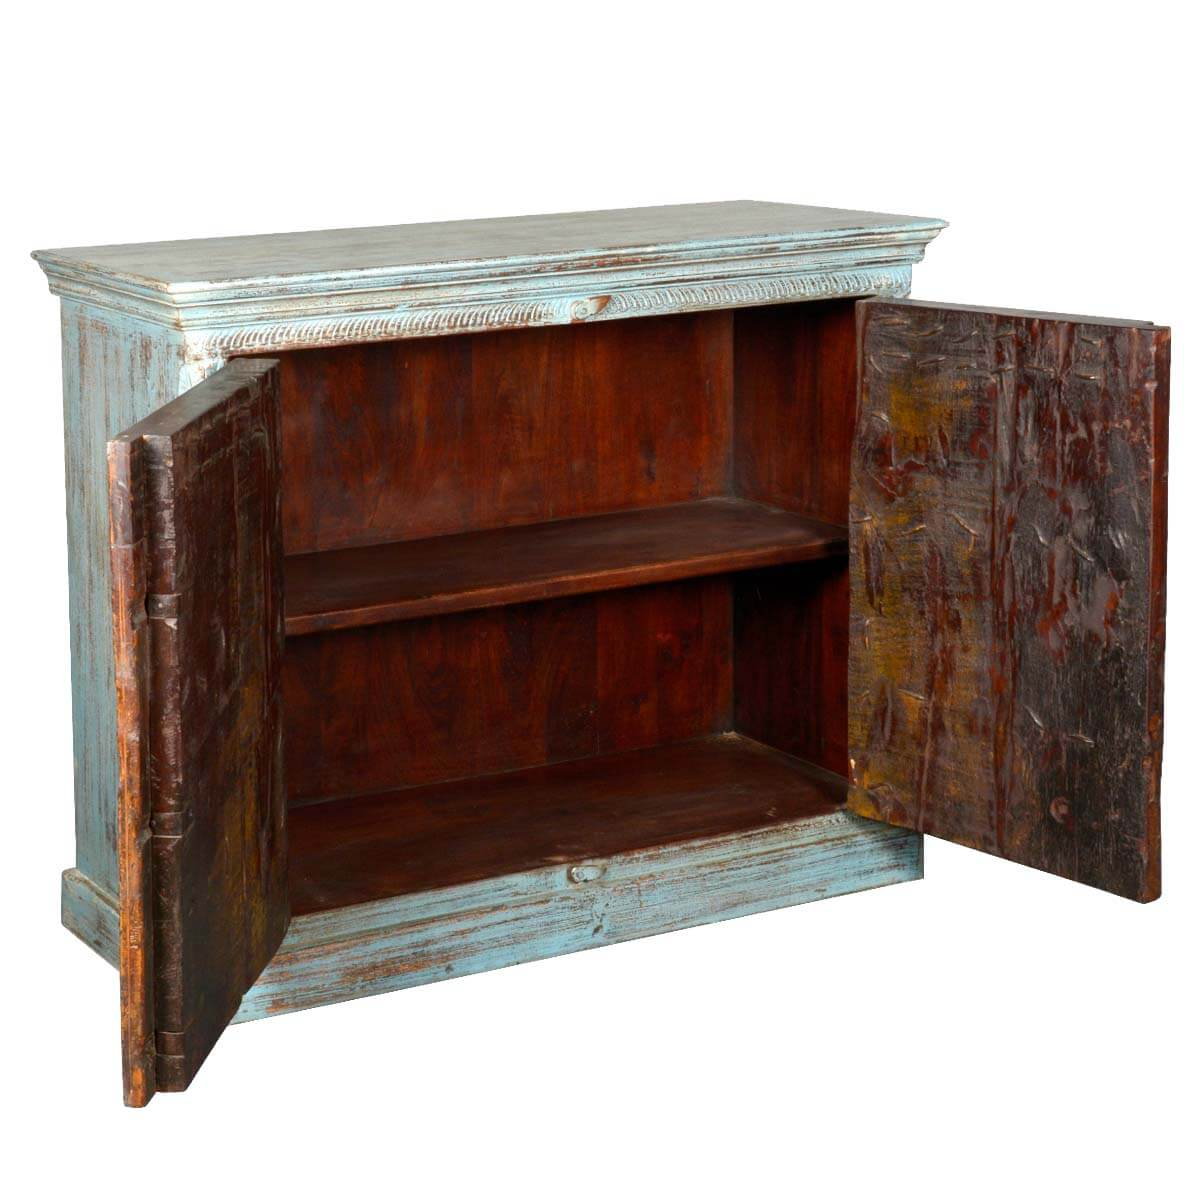 Rustic White Washed Reclaimed Wood Buffet Sideboard Cabinet